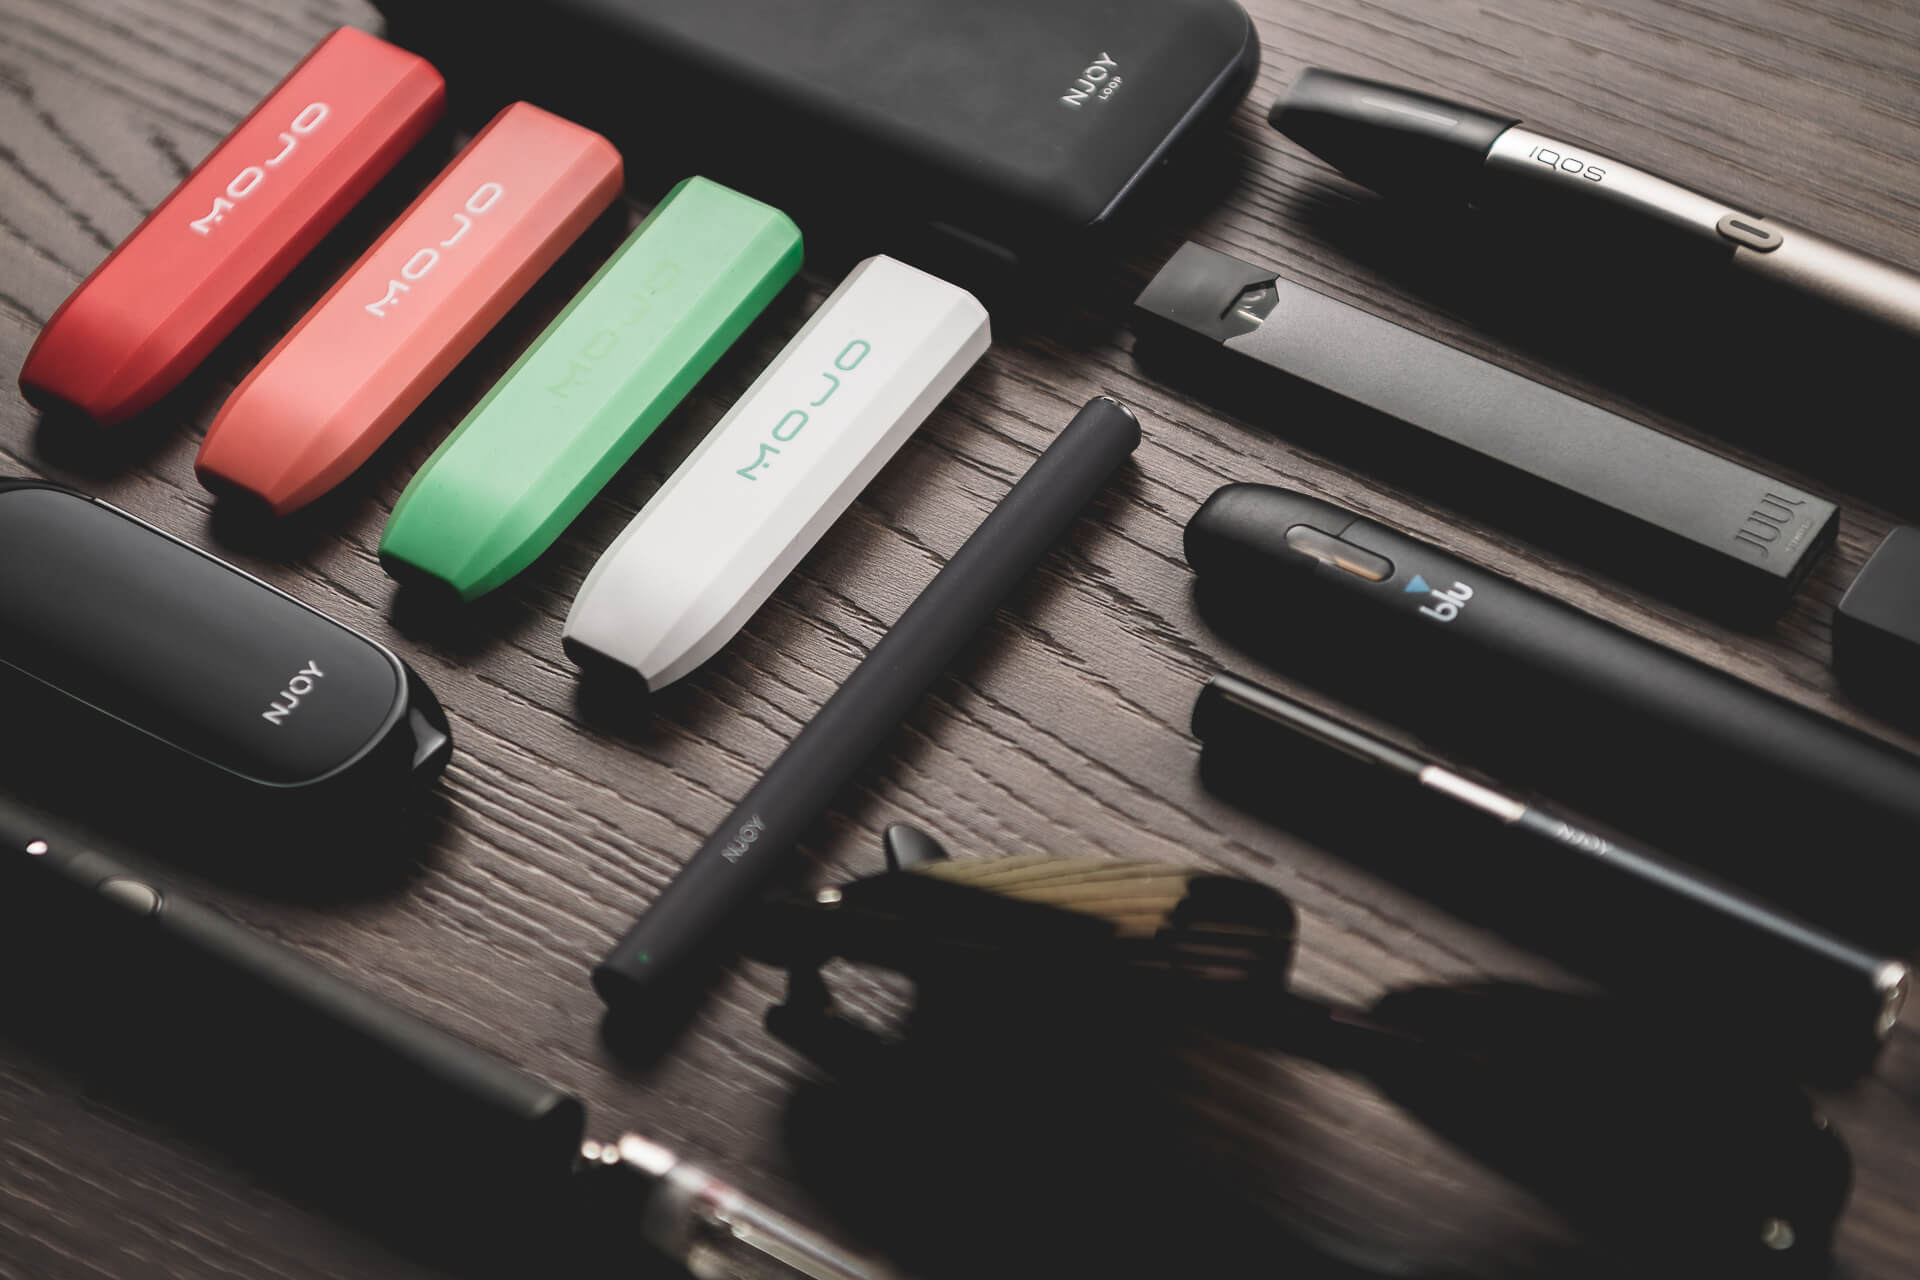 The Best Vapes for Beginners and Smokers in 2019 (+ Things to Know)